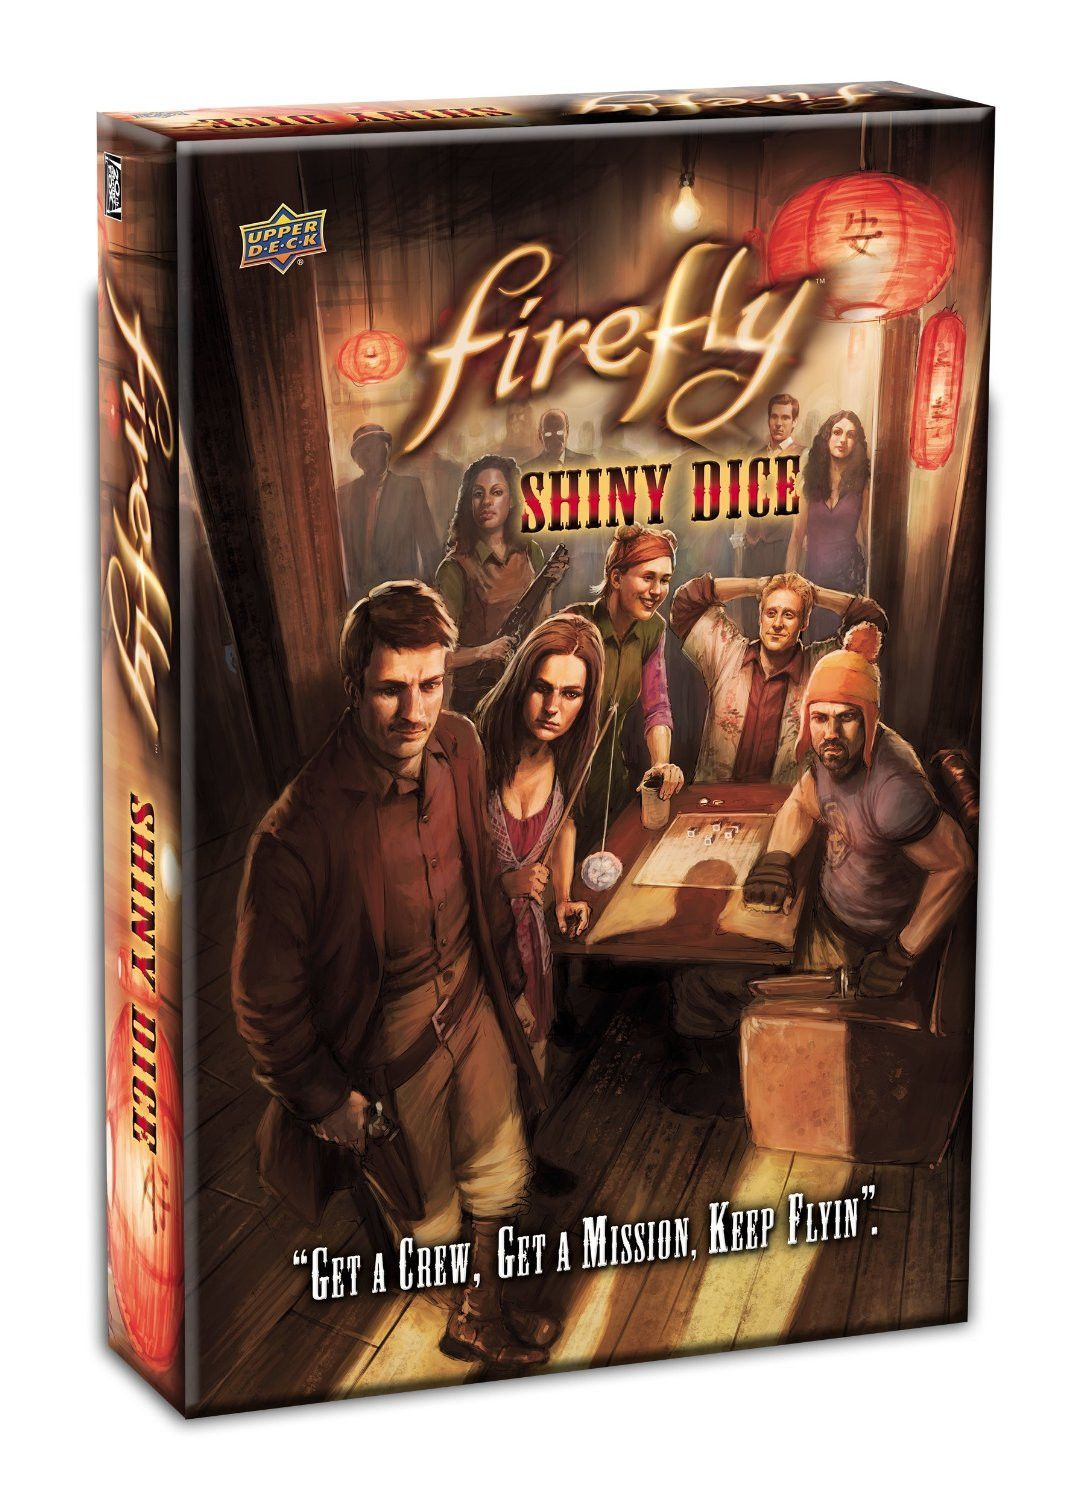 Firefly shiny dice board games dice games card games